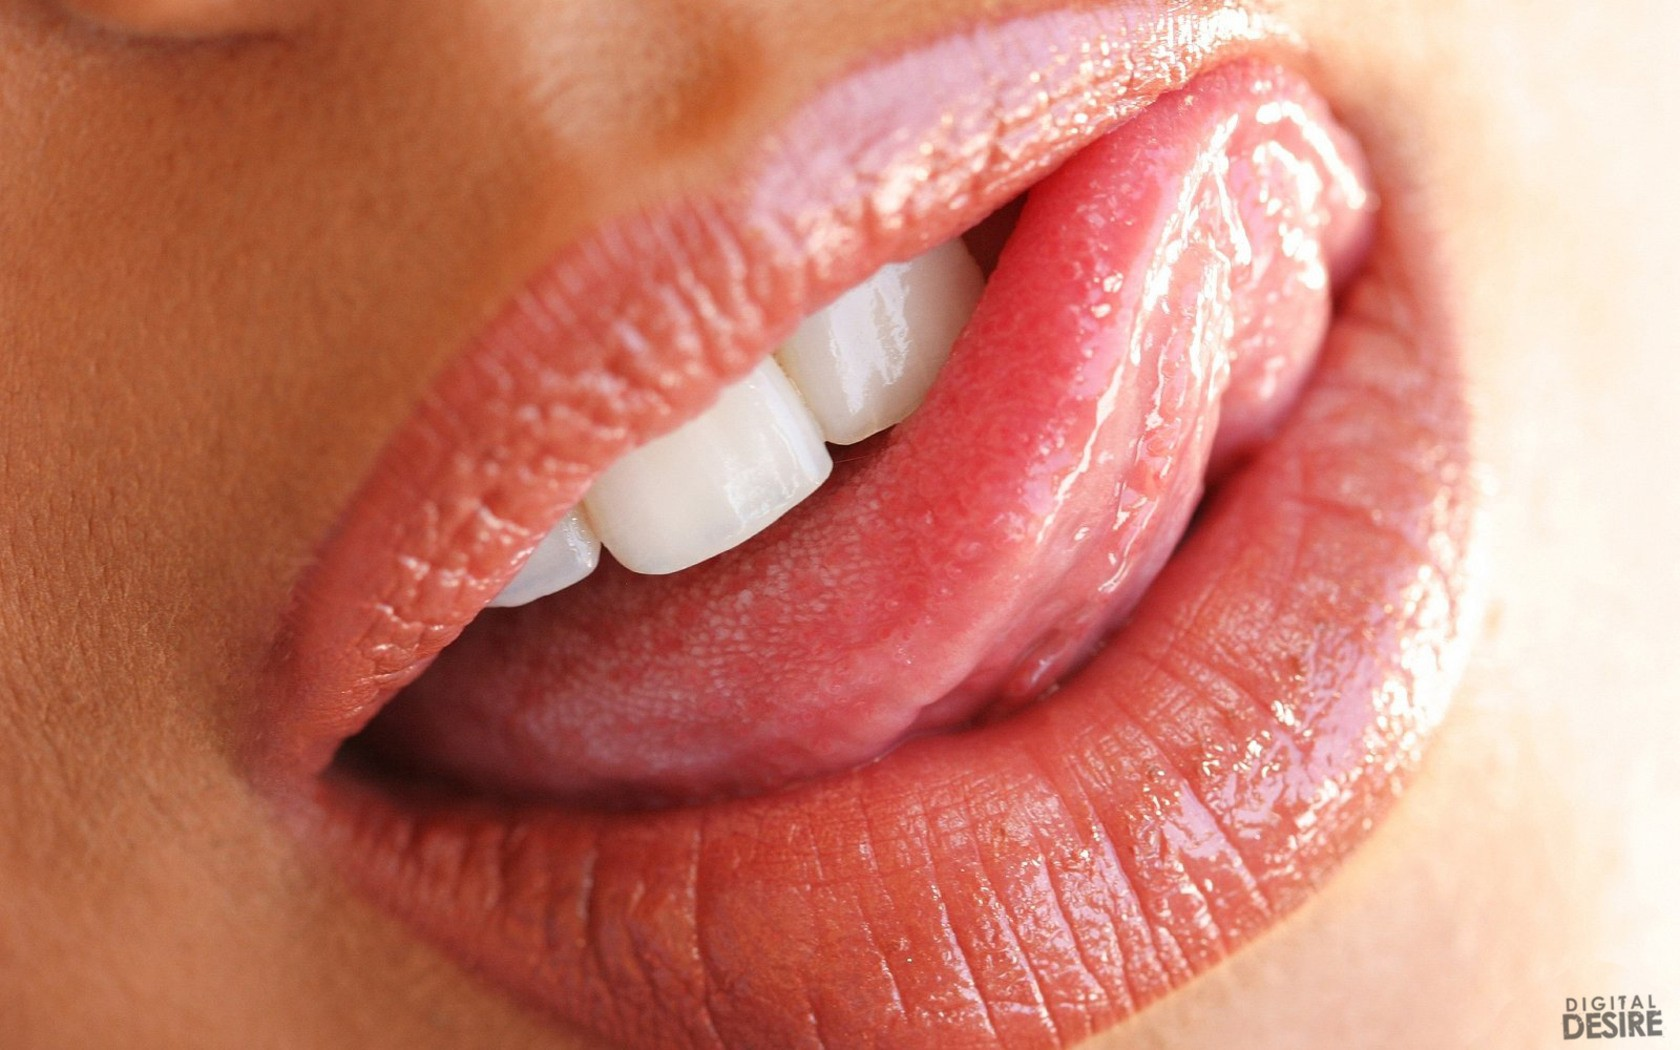 woman close-up lips mouth HD Wallpaper